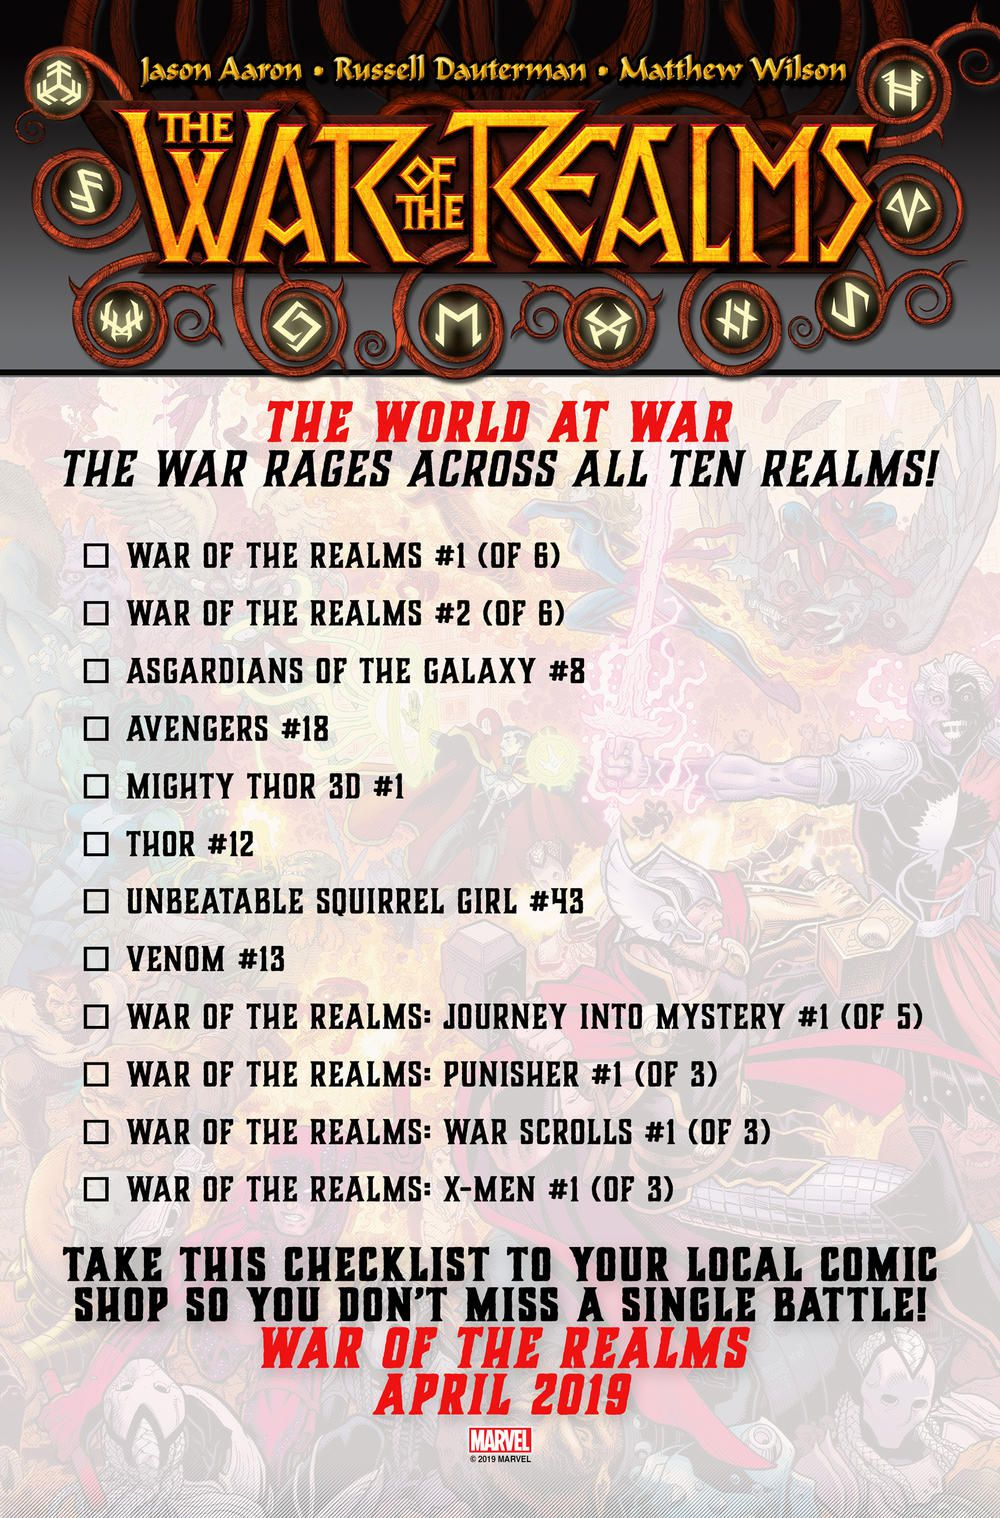 War of the Realms checklist